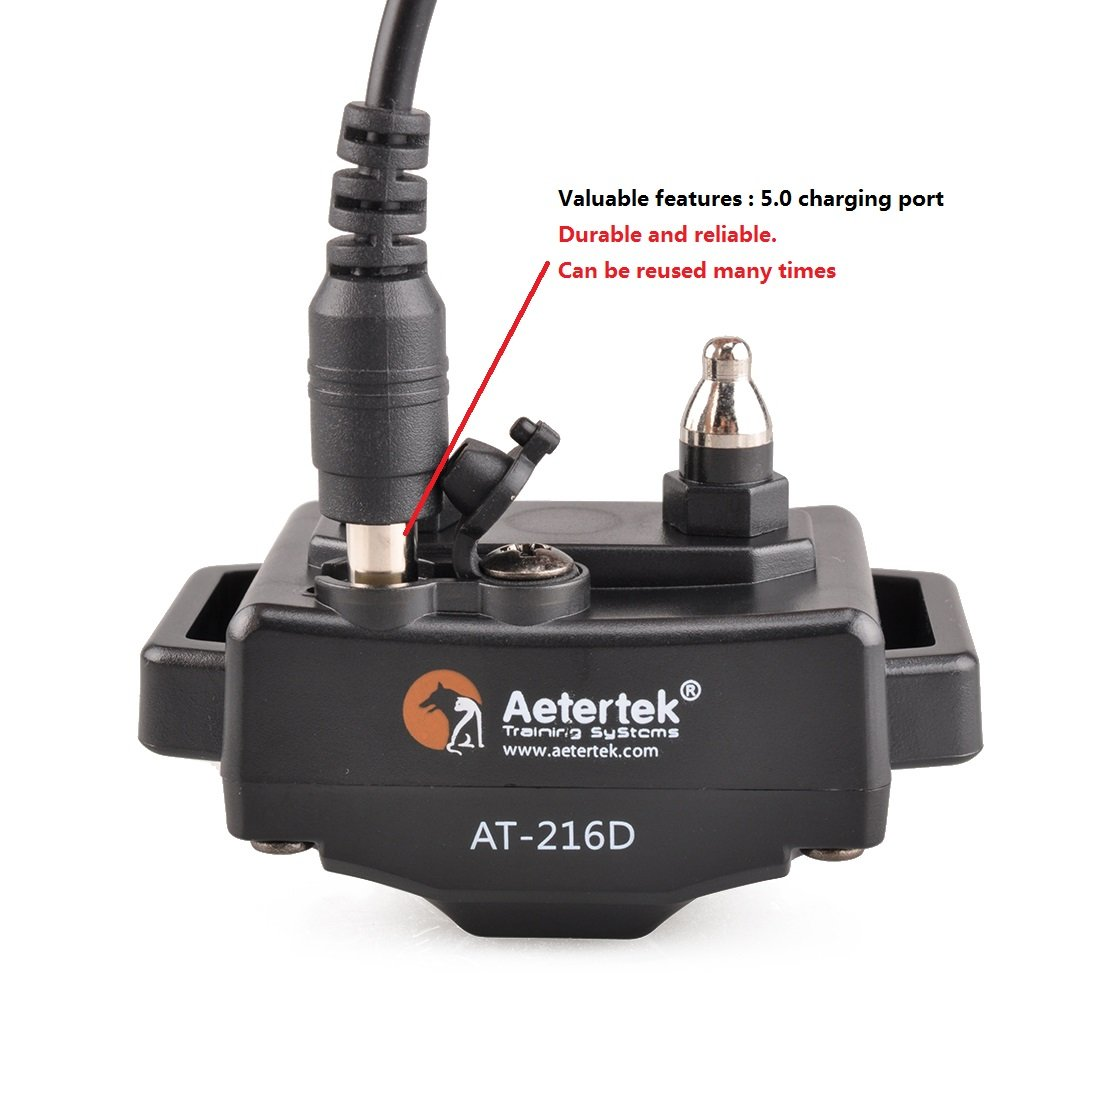 Aetertek Upgrade AT-216D 600 Yard Waterproof Rechargeable Remote Dog Training Shock Collar ,Beep ,Vibrate Stop Bark E Collar (For 2 dogs) by Aetertek (Image #3)